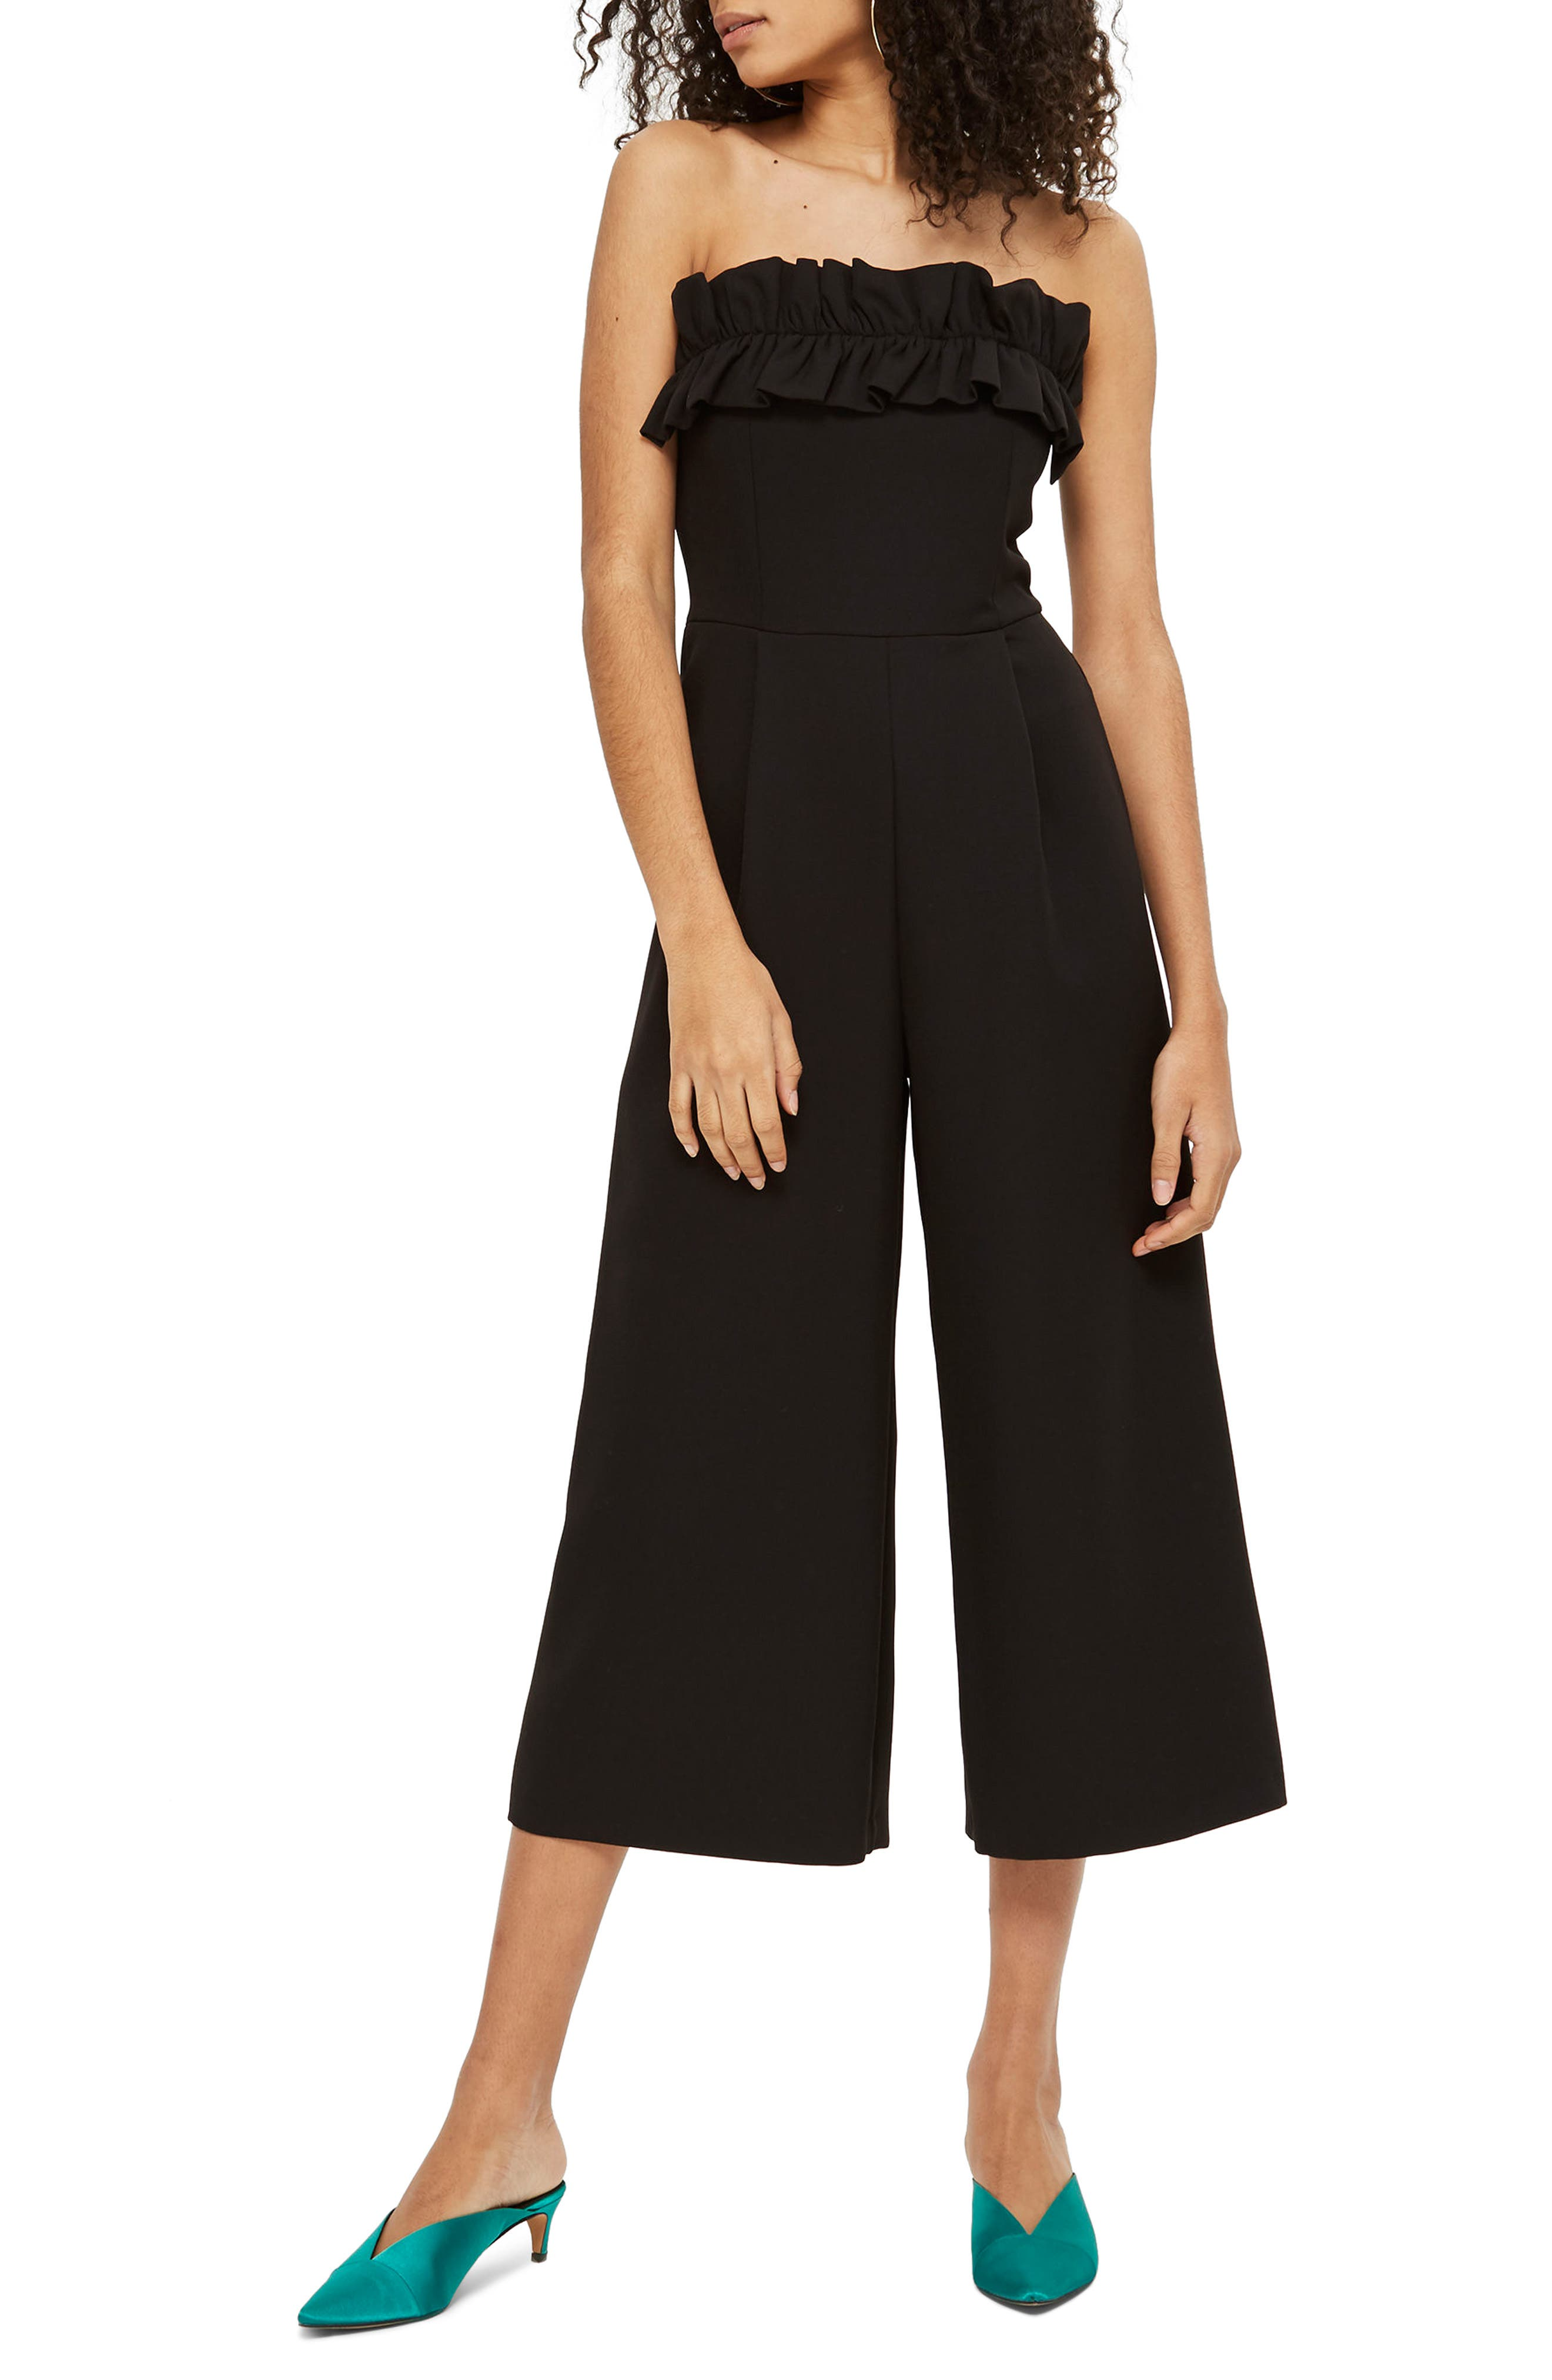 Topshop Ruffle Strapless Jumpsuit